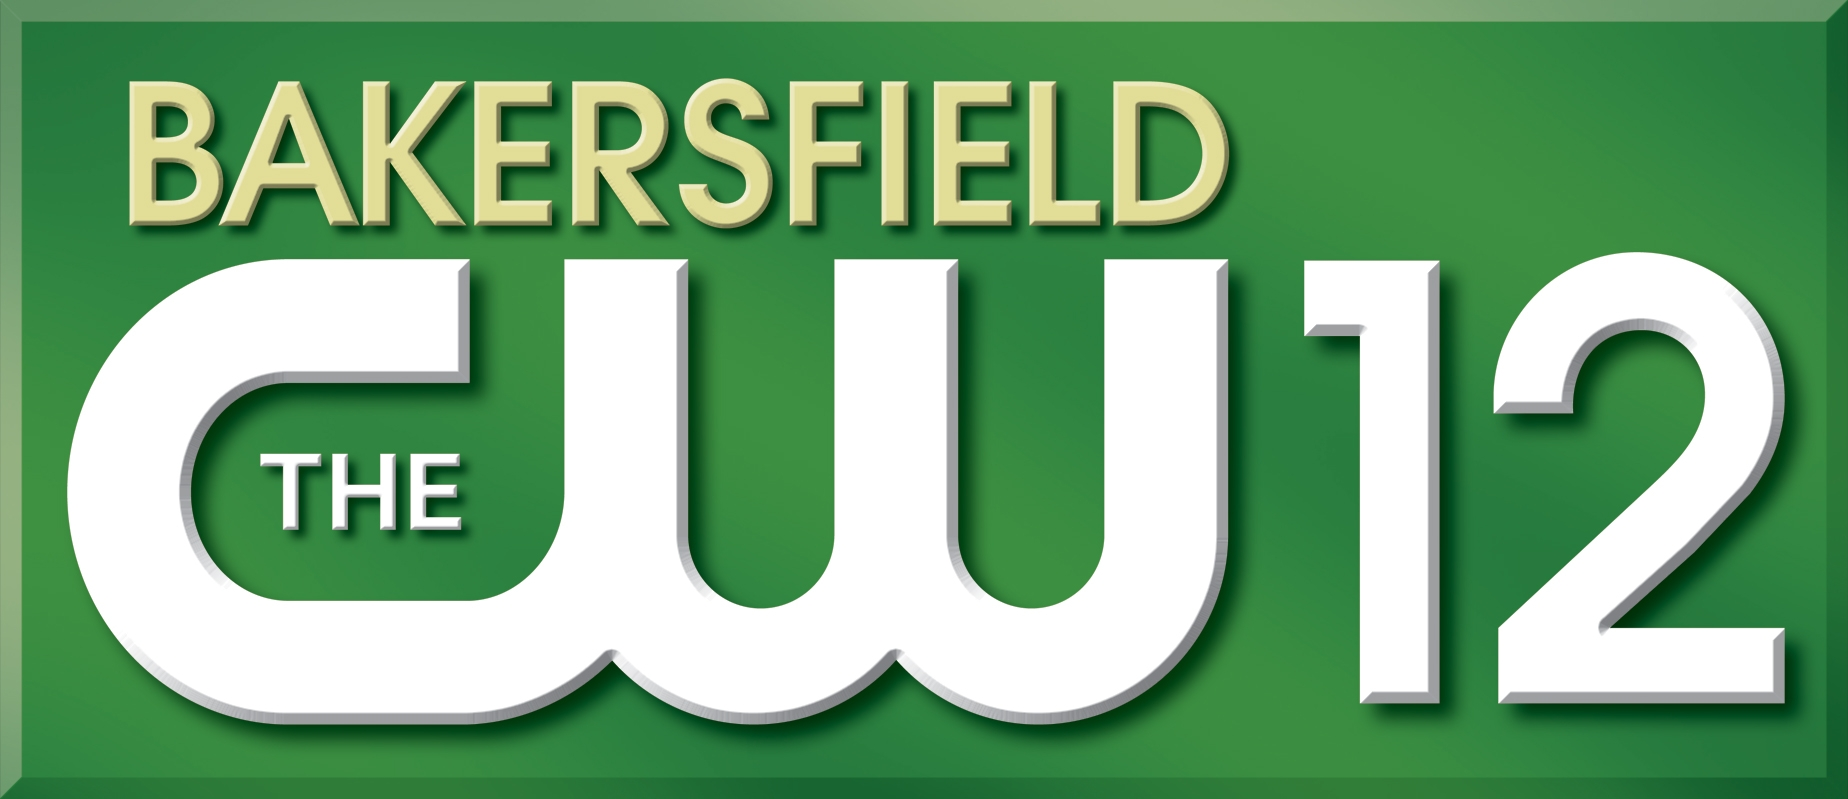 CWBakersfield_color.JPG